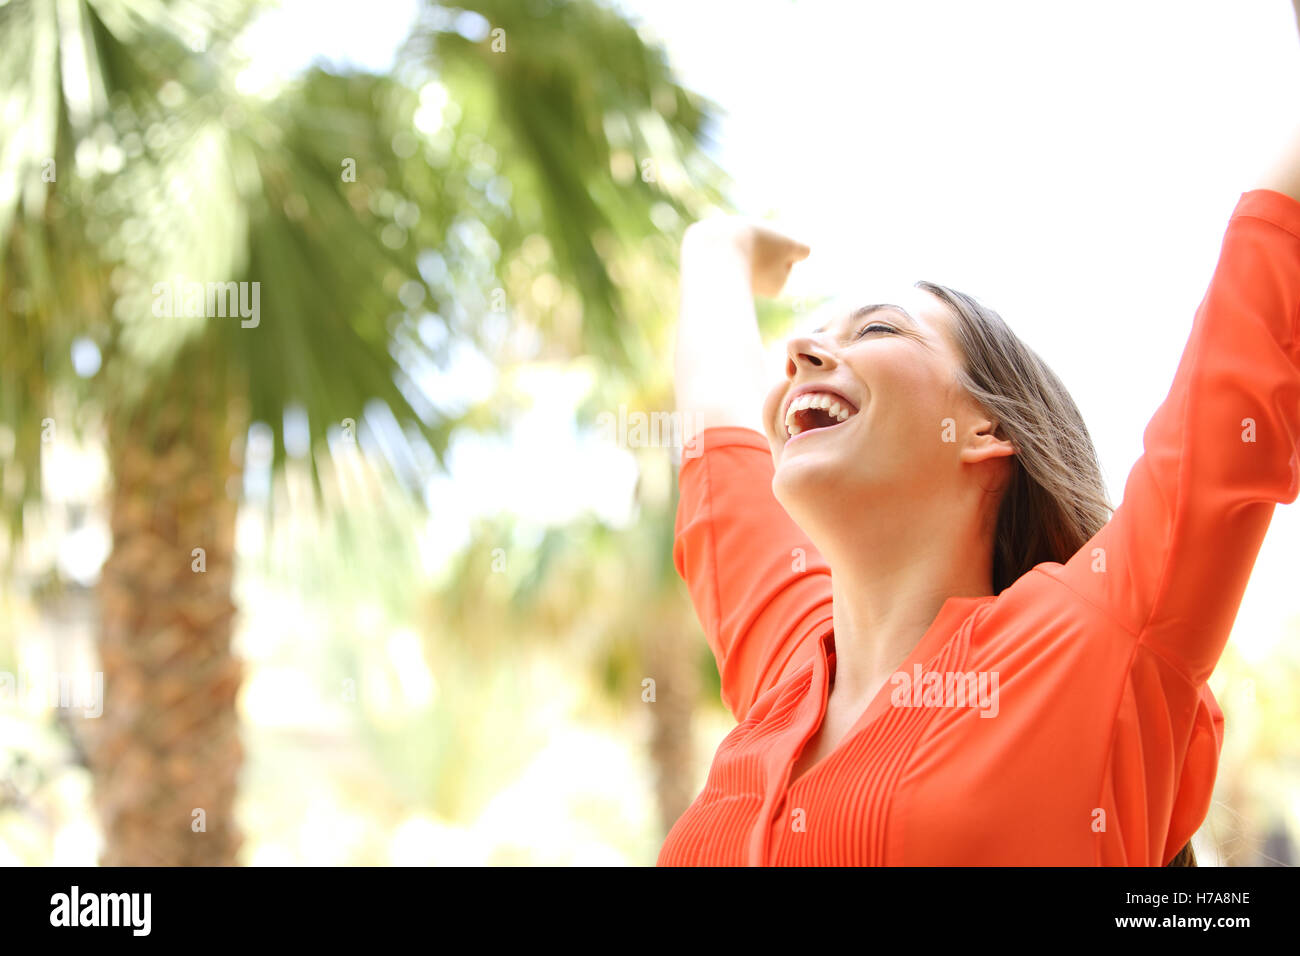 Portrait of an excited woman with eyes closed raising arms skyward outdoors with palm trees in the background - Stock Image